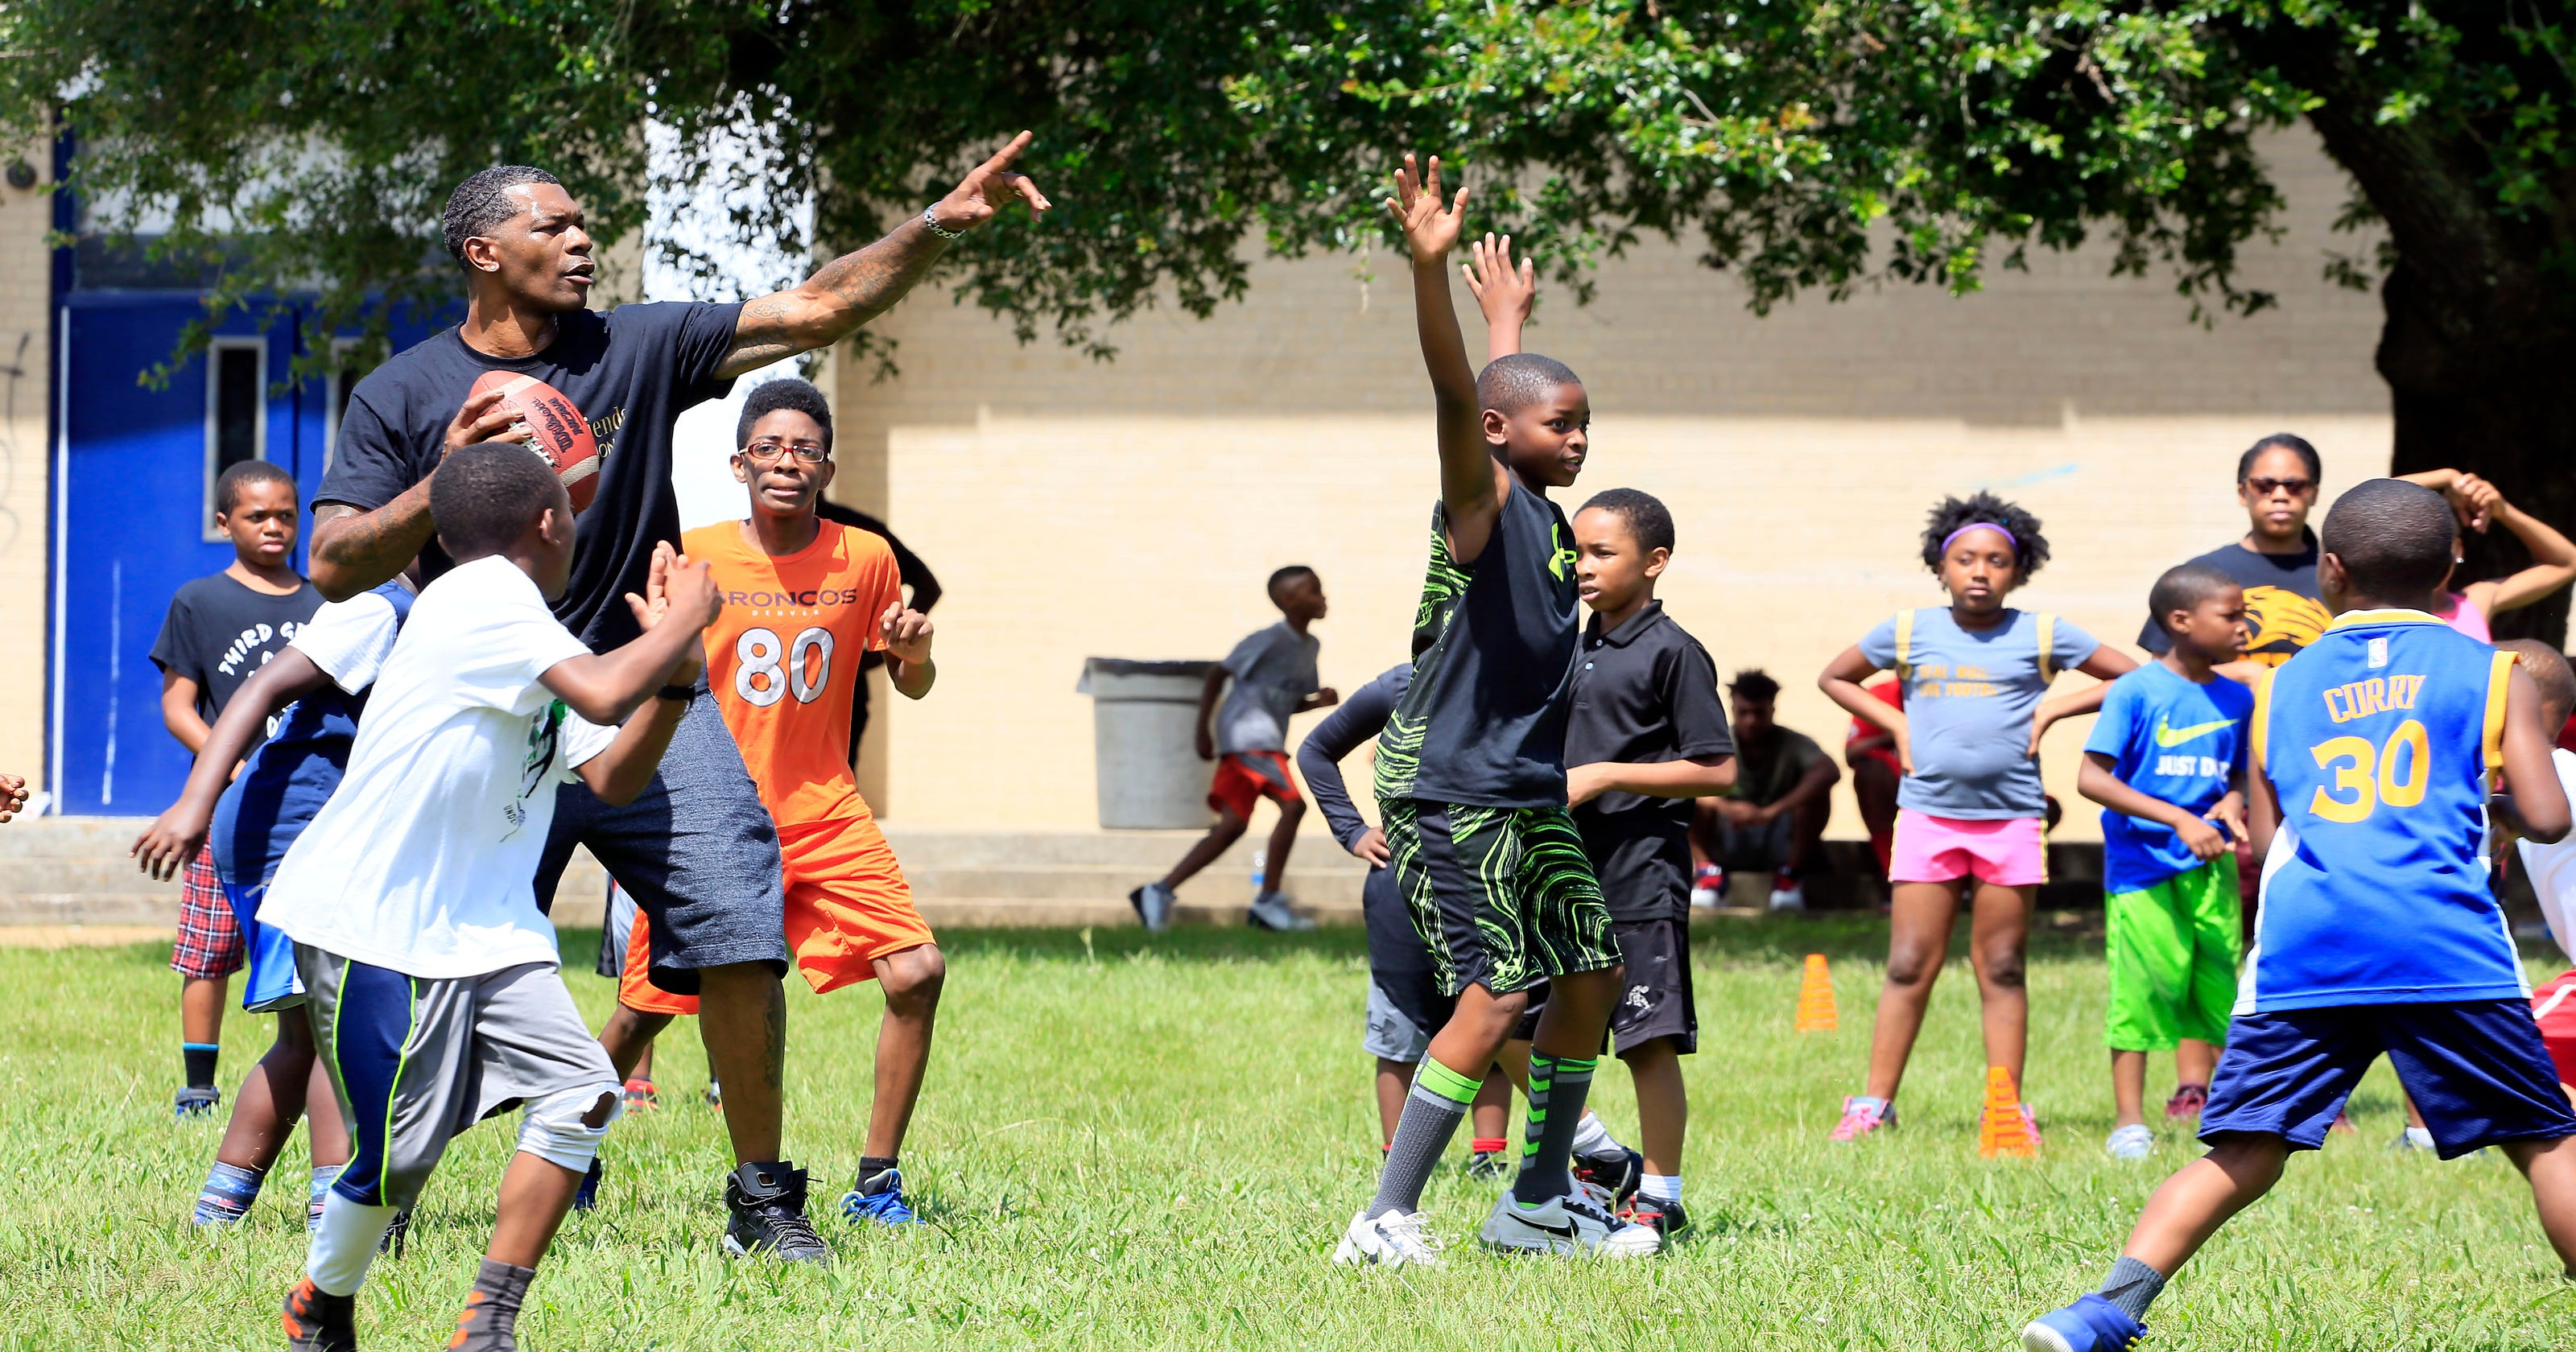 Sports Camps - Sport & Physical Activity |Sports Camp